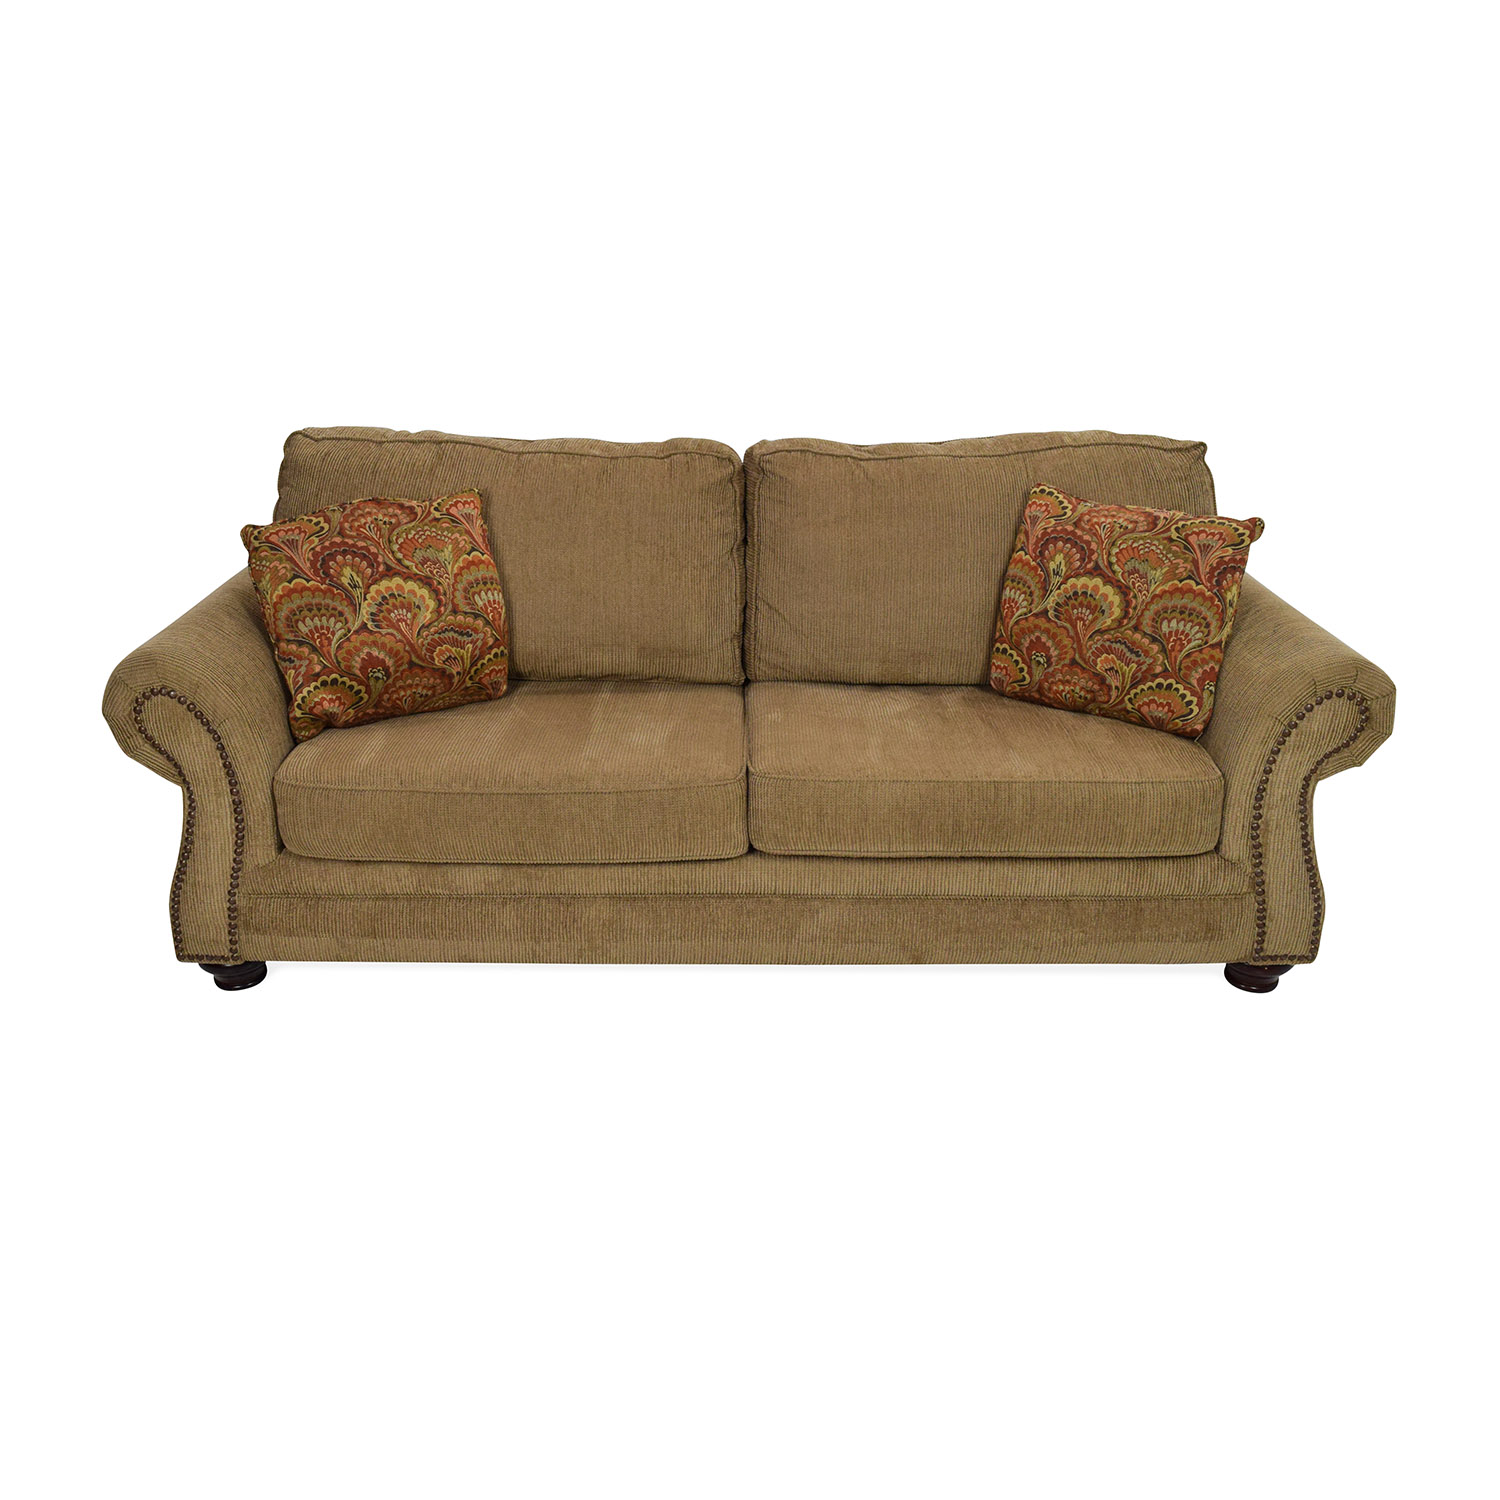 american leather sleeper sofa raymour flanigan chemical free bed ashley sofas prices living room amusing furniture